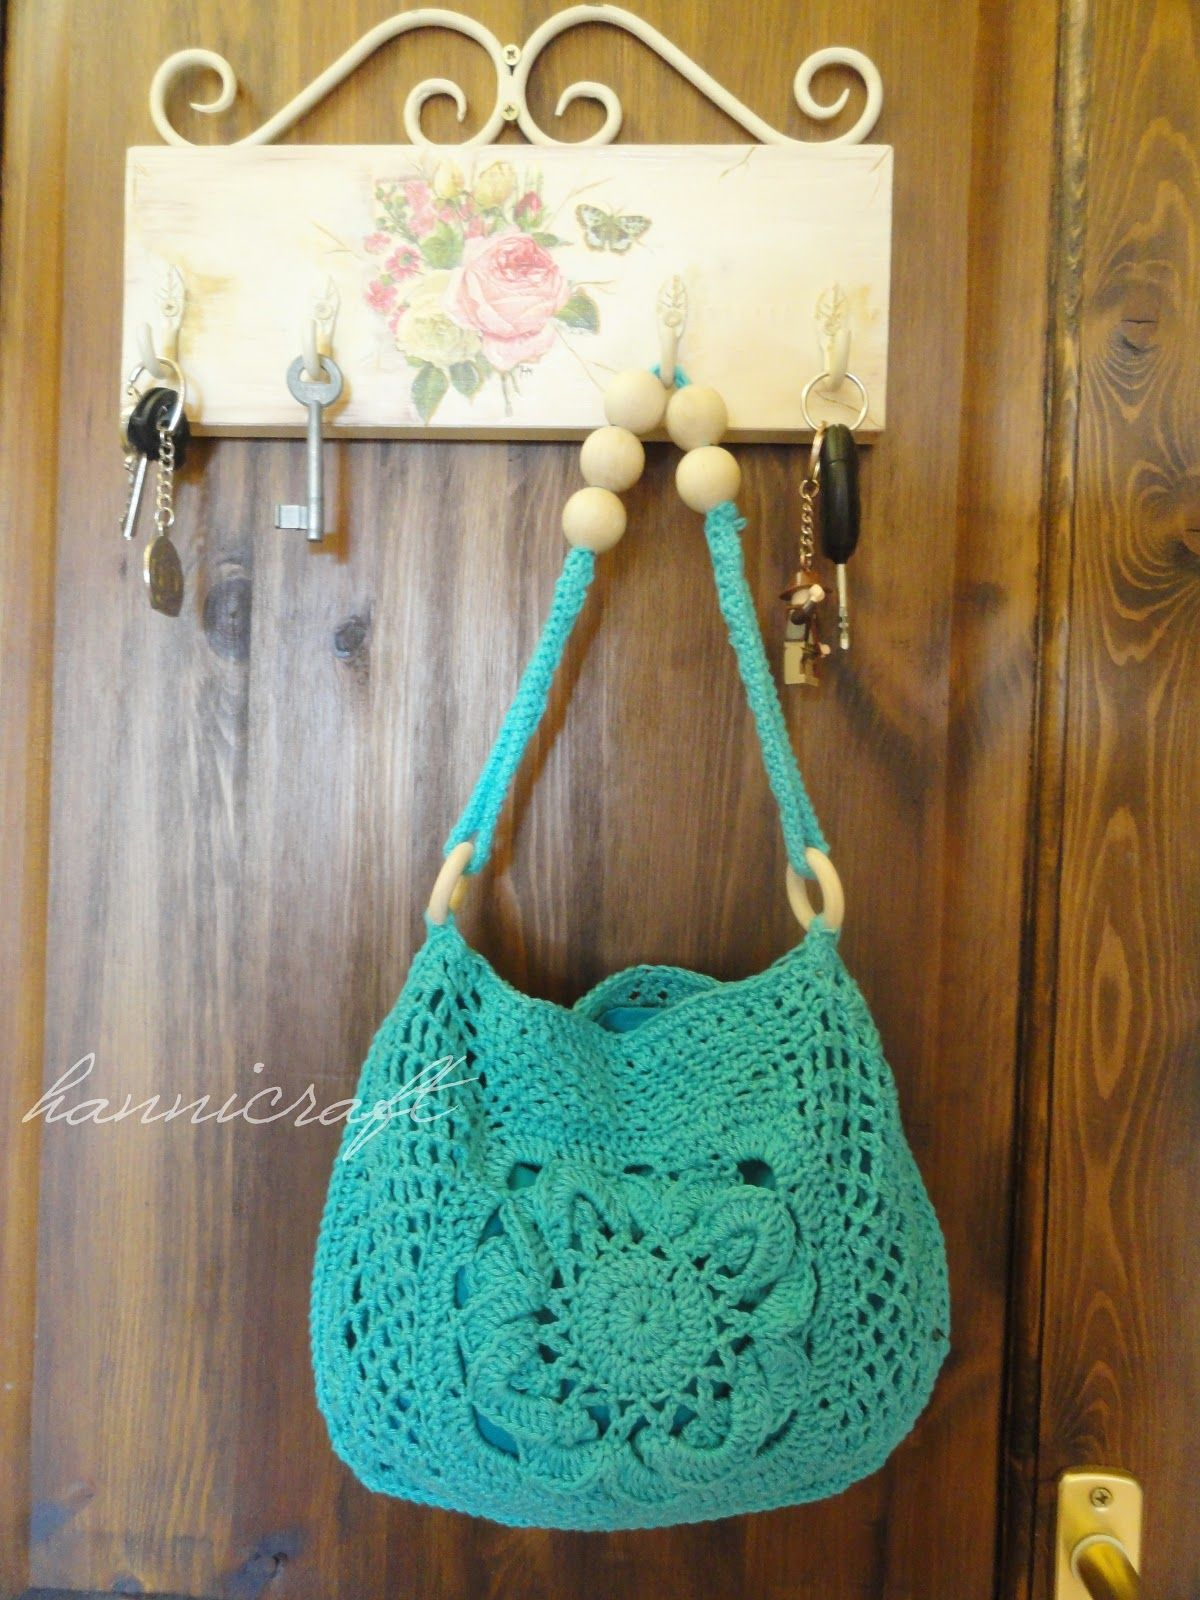 Crochet purse pattern Might try this! Cute! | Crafty Bit$h ...